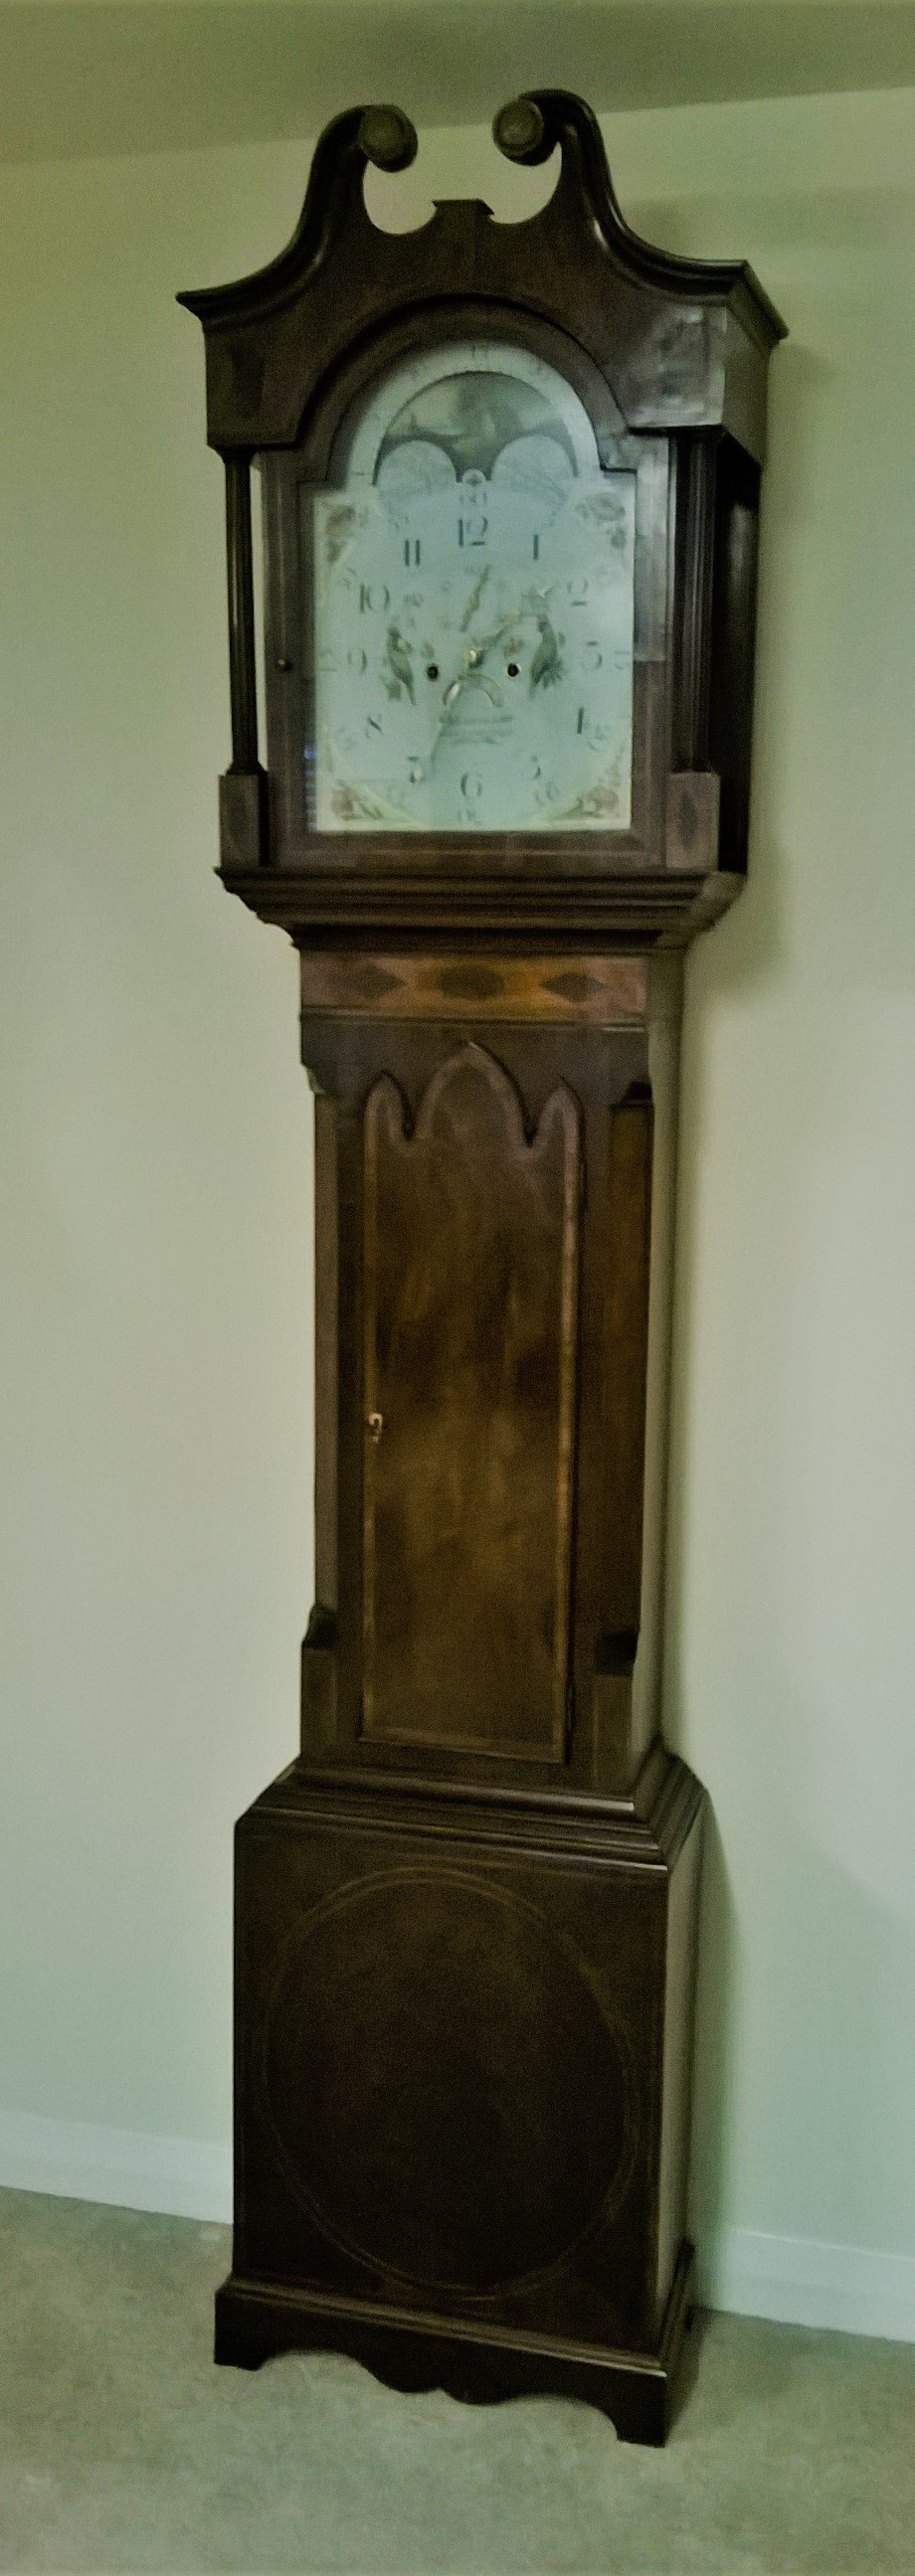 Dating longcase clock dials with roman 4